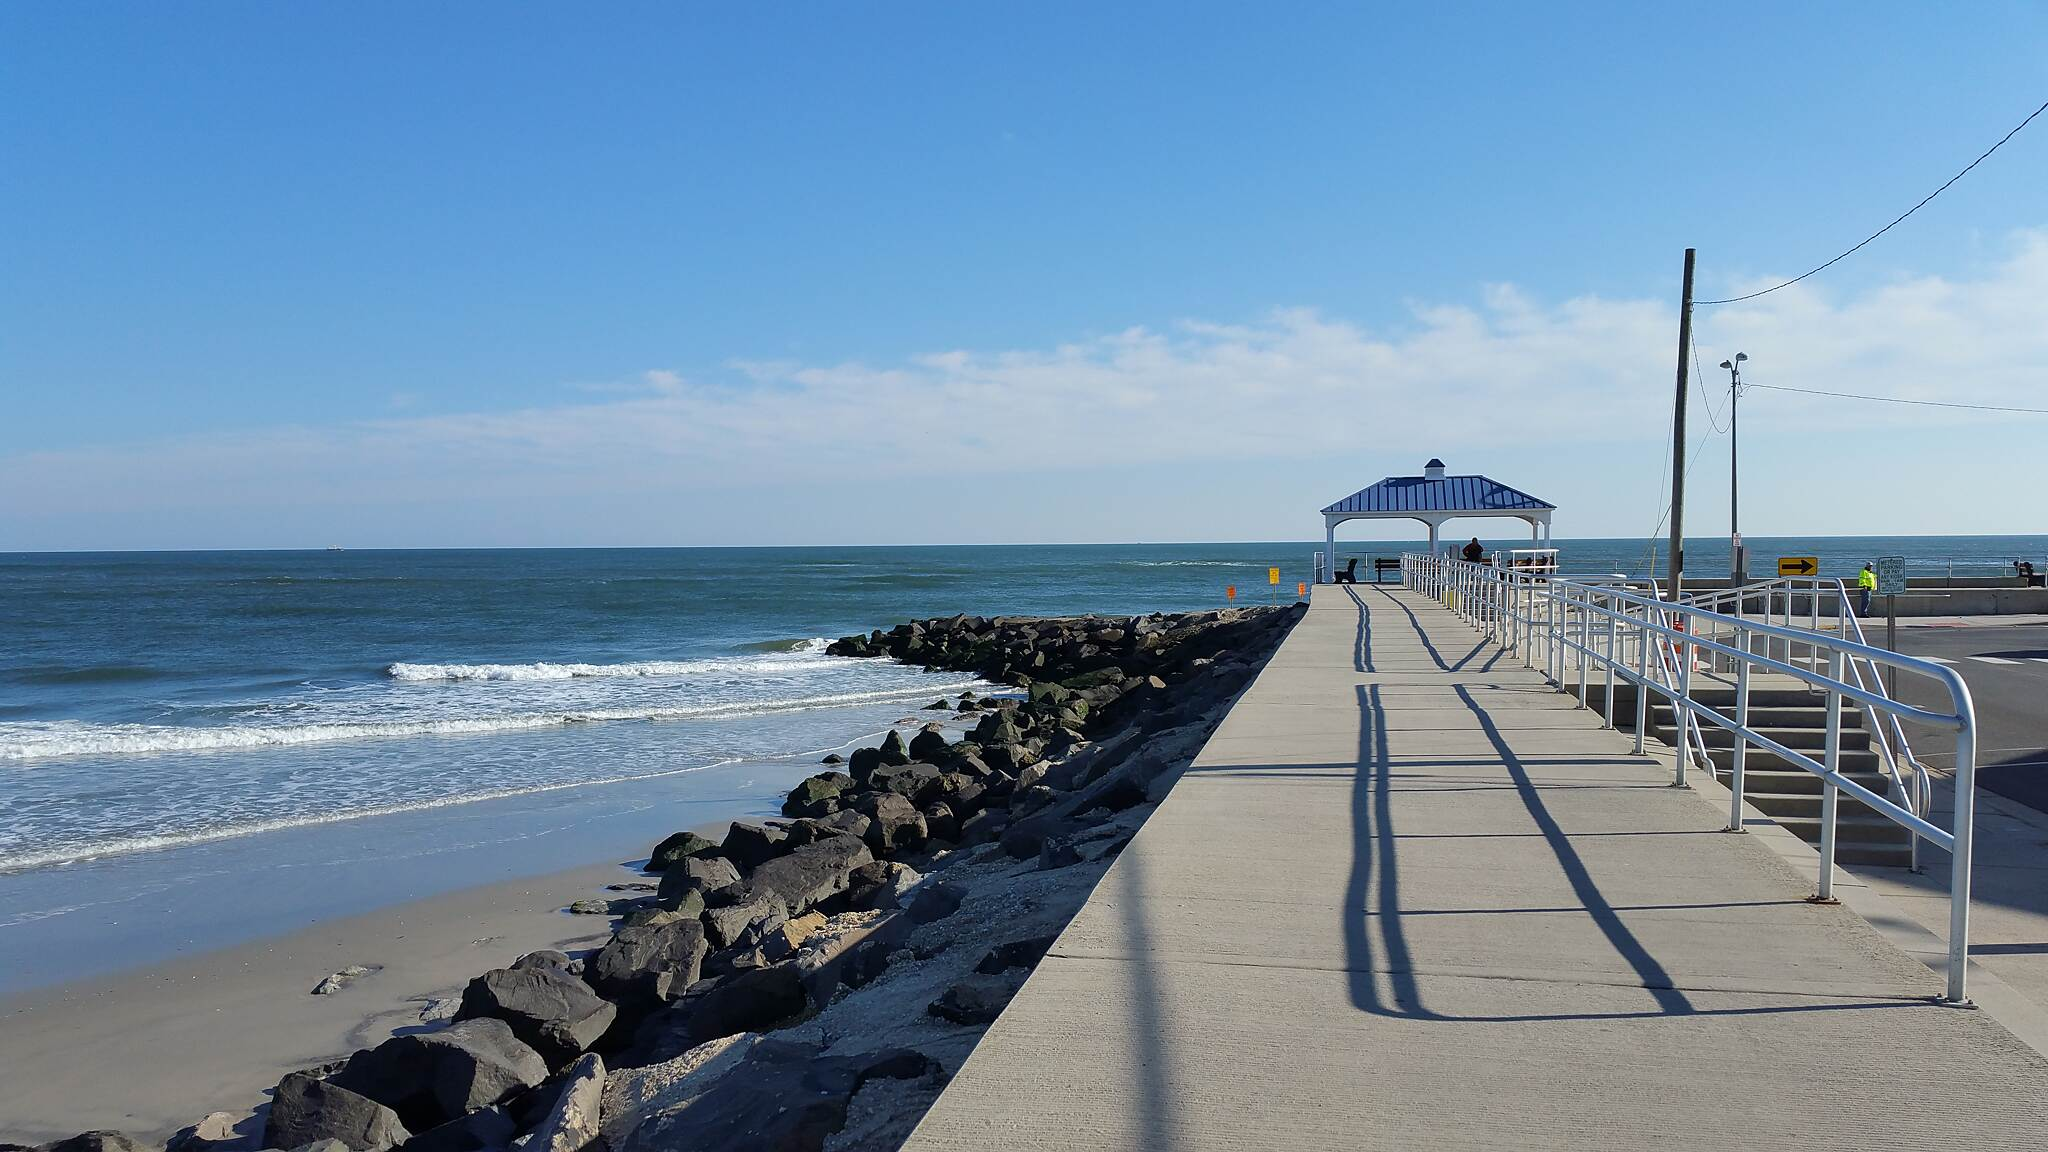 North Wildwood Seawall Trail Crsystal Clear  November Day By The Ocean Location near the end point south, What a site just to sit down and enjoy whats in front of you.